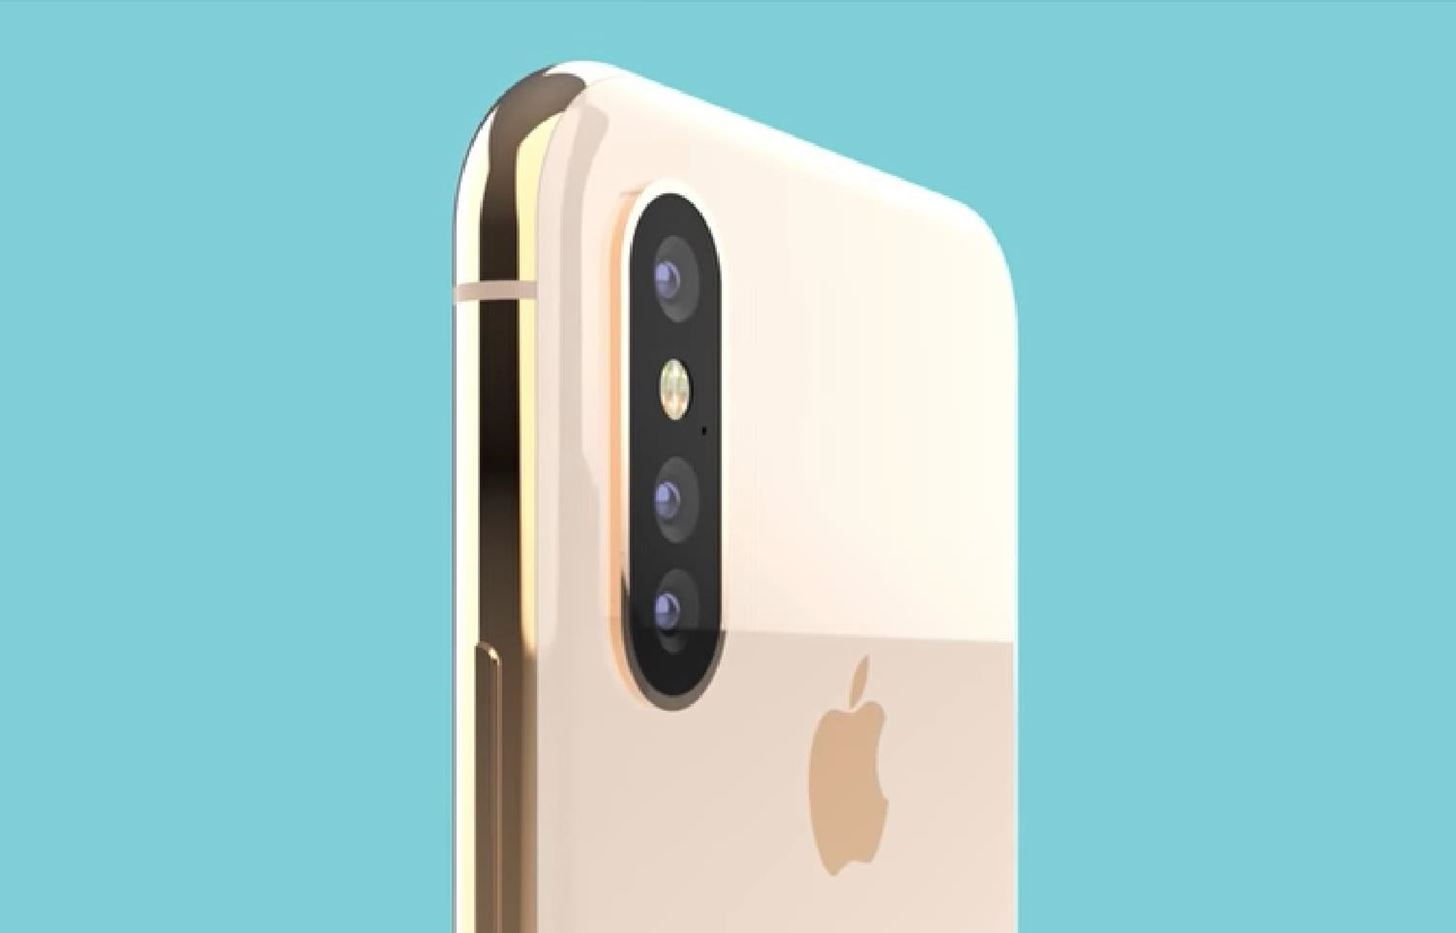 2018 iPhone Rumors: Everything We Know So Far About Apple's Next Big Smartphones